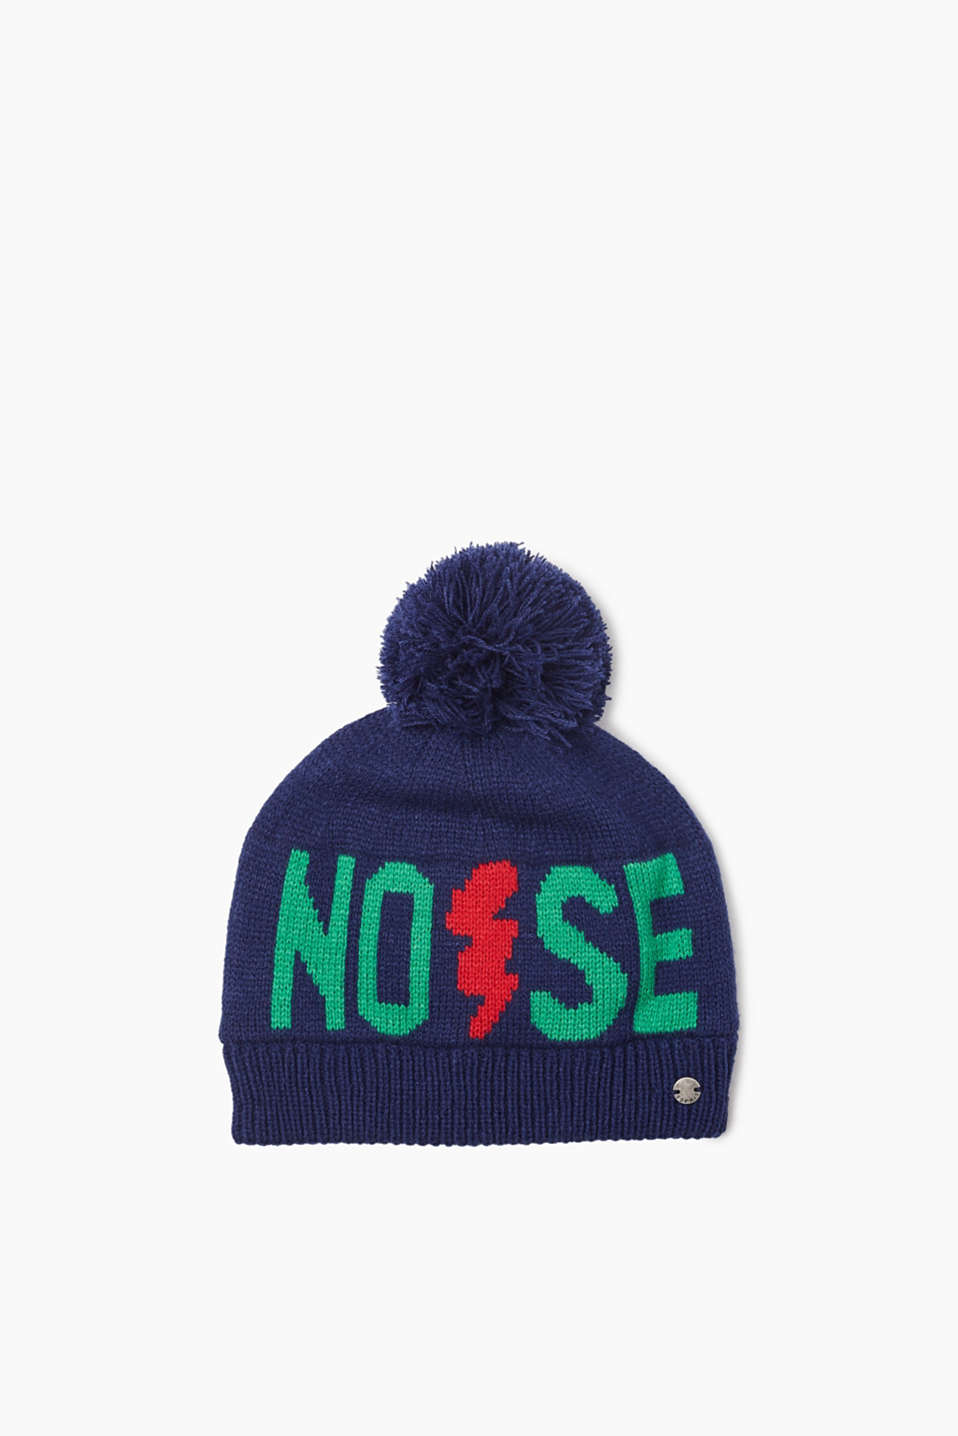 Soft knitted hat with a pompom, knitted statement and a jersey lining